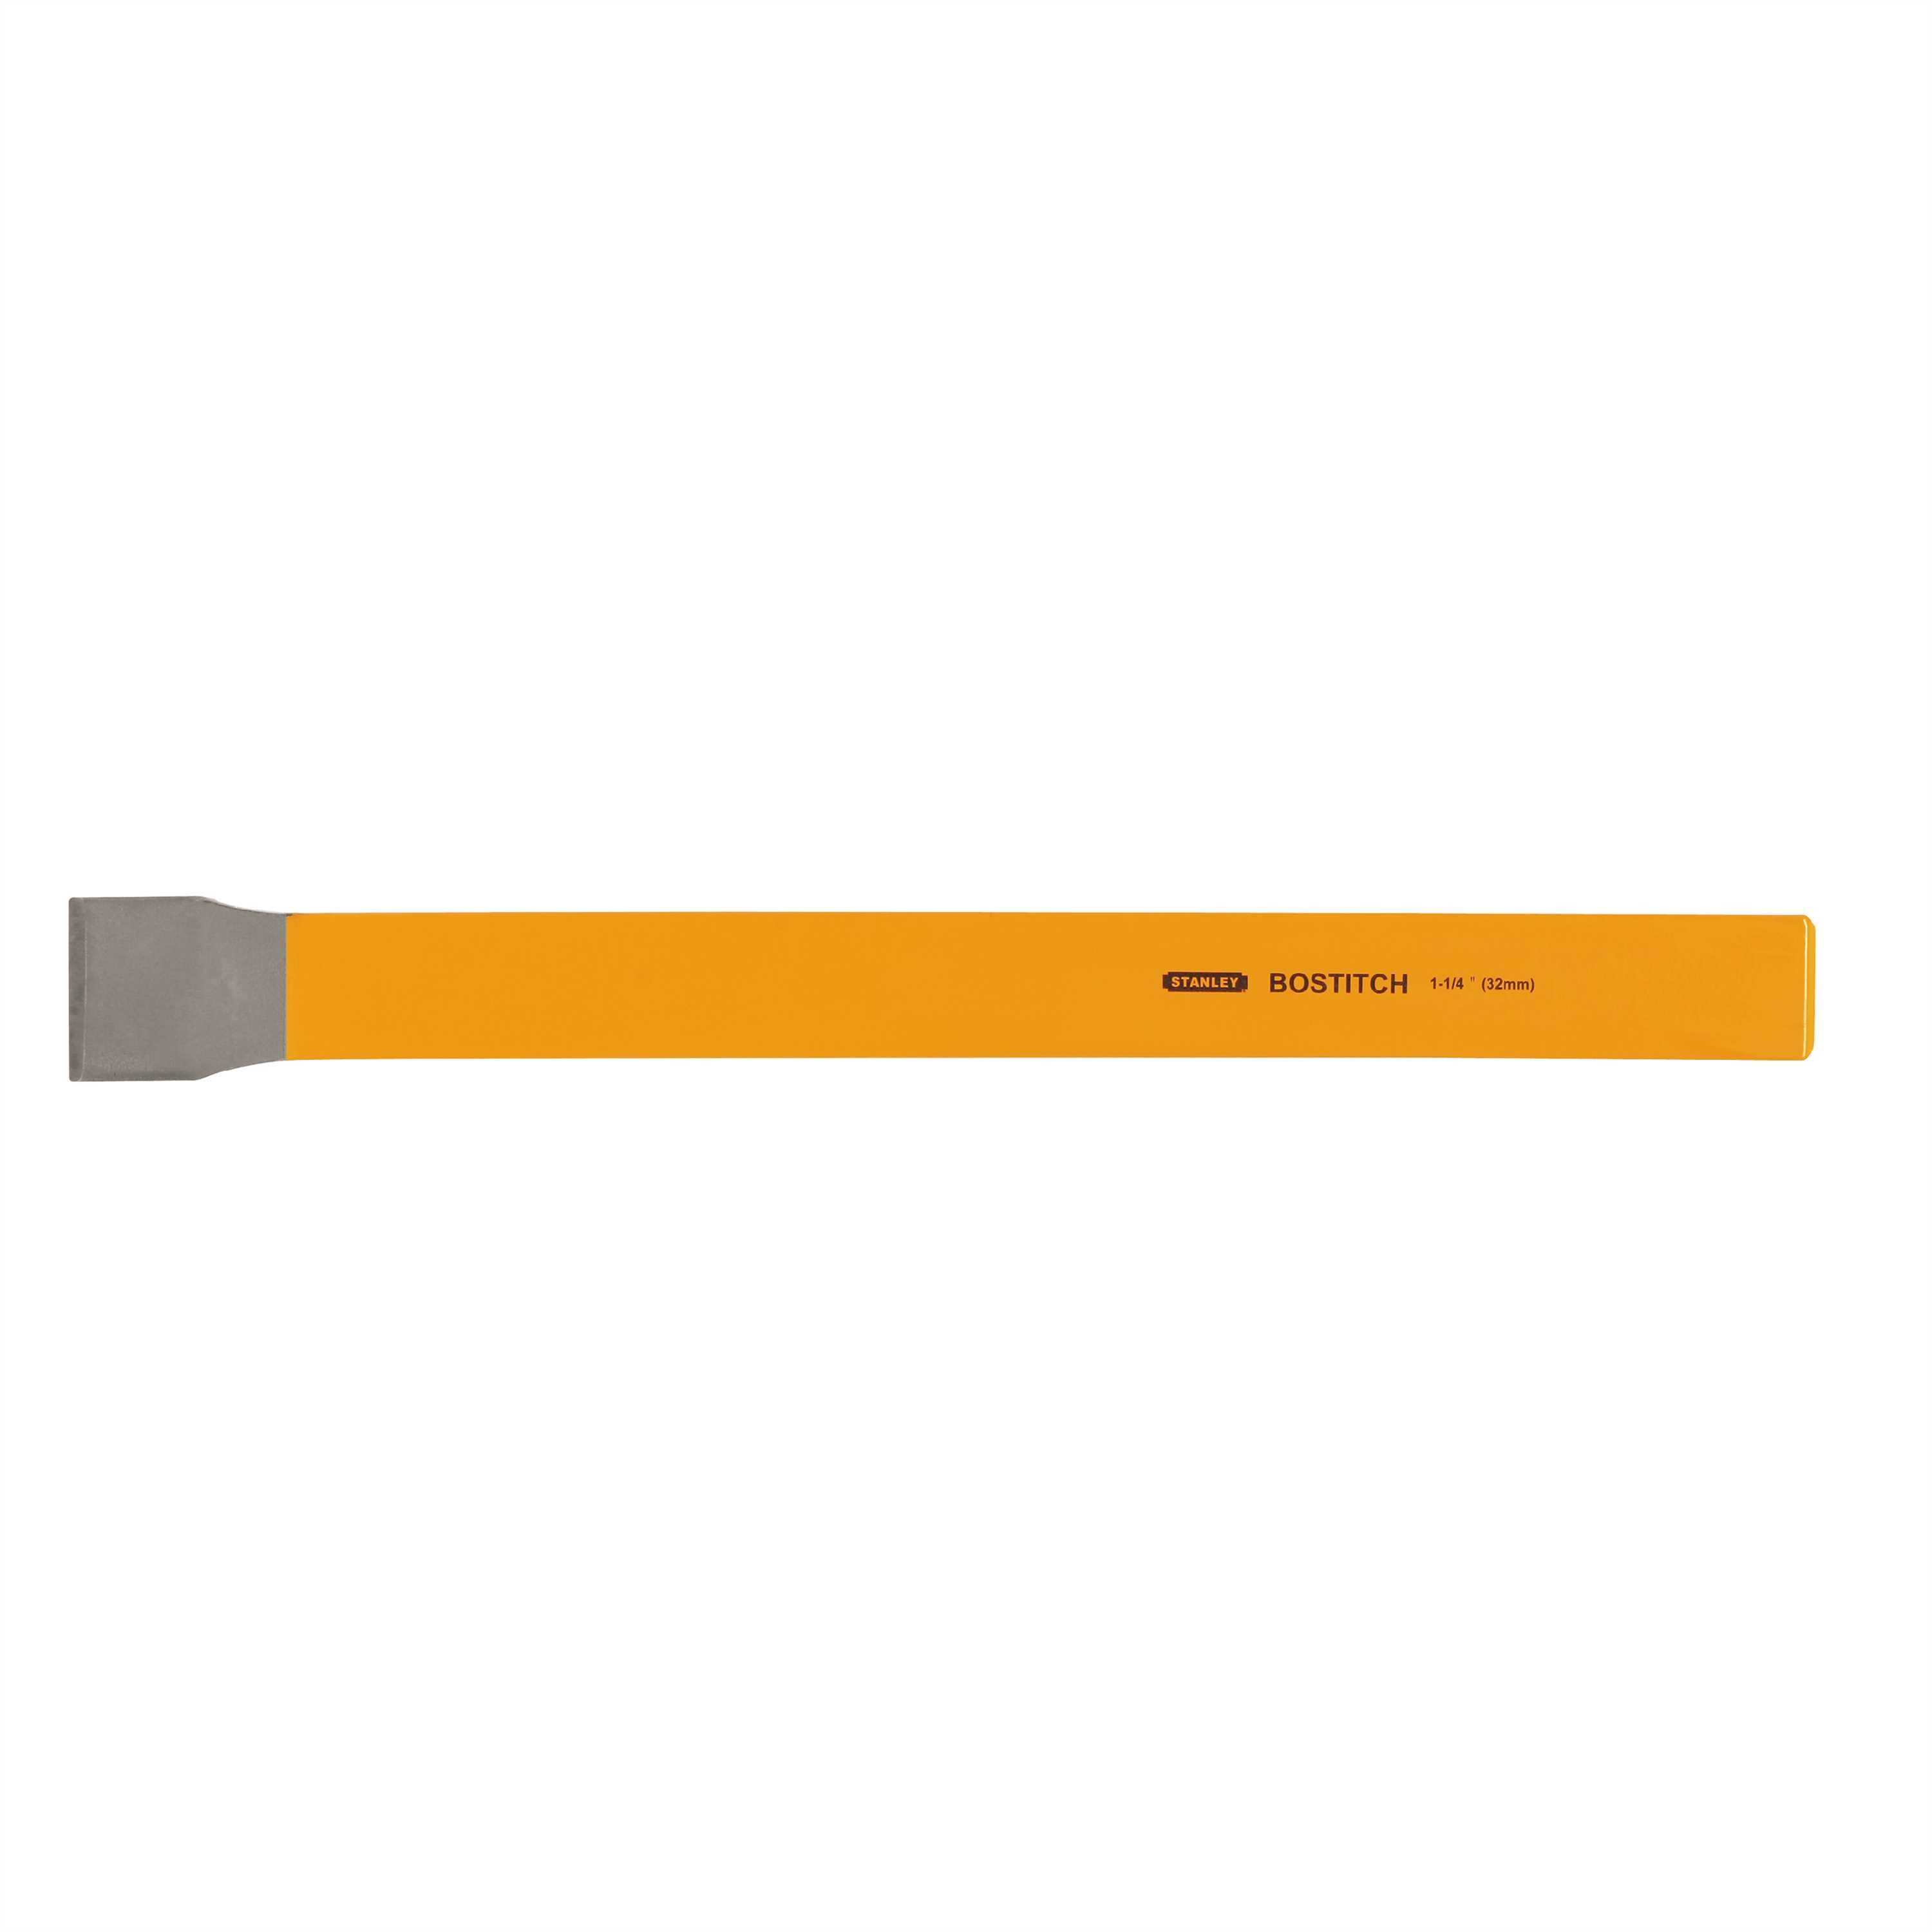 Bostitch - 114 in x 12 in Flat Utility Chisel - 16-054